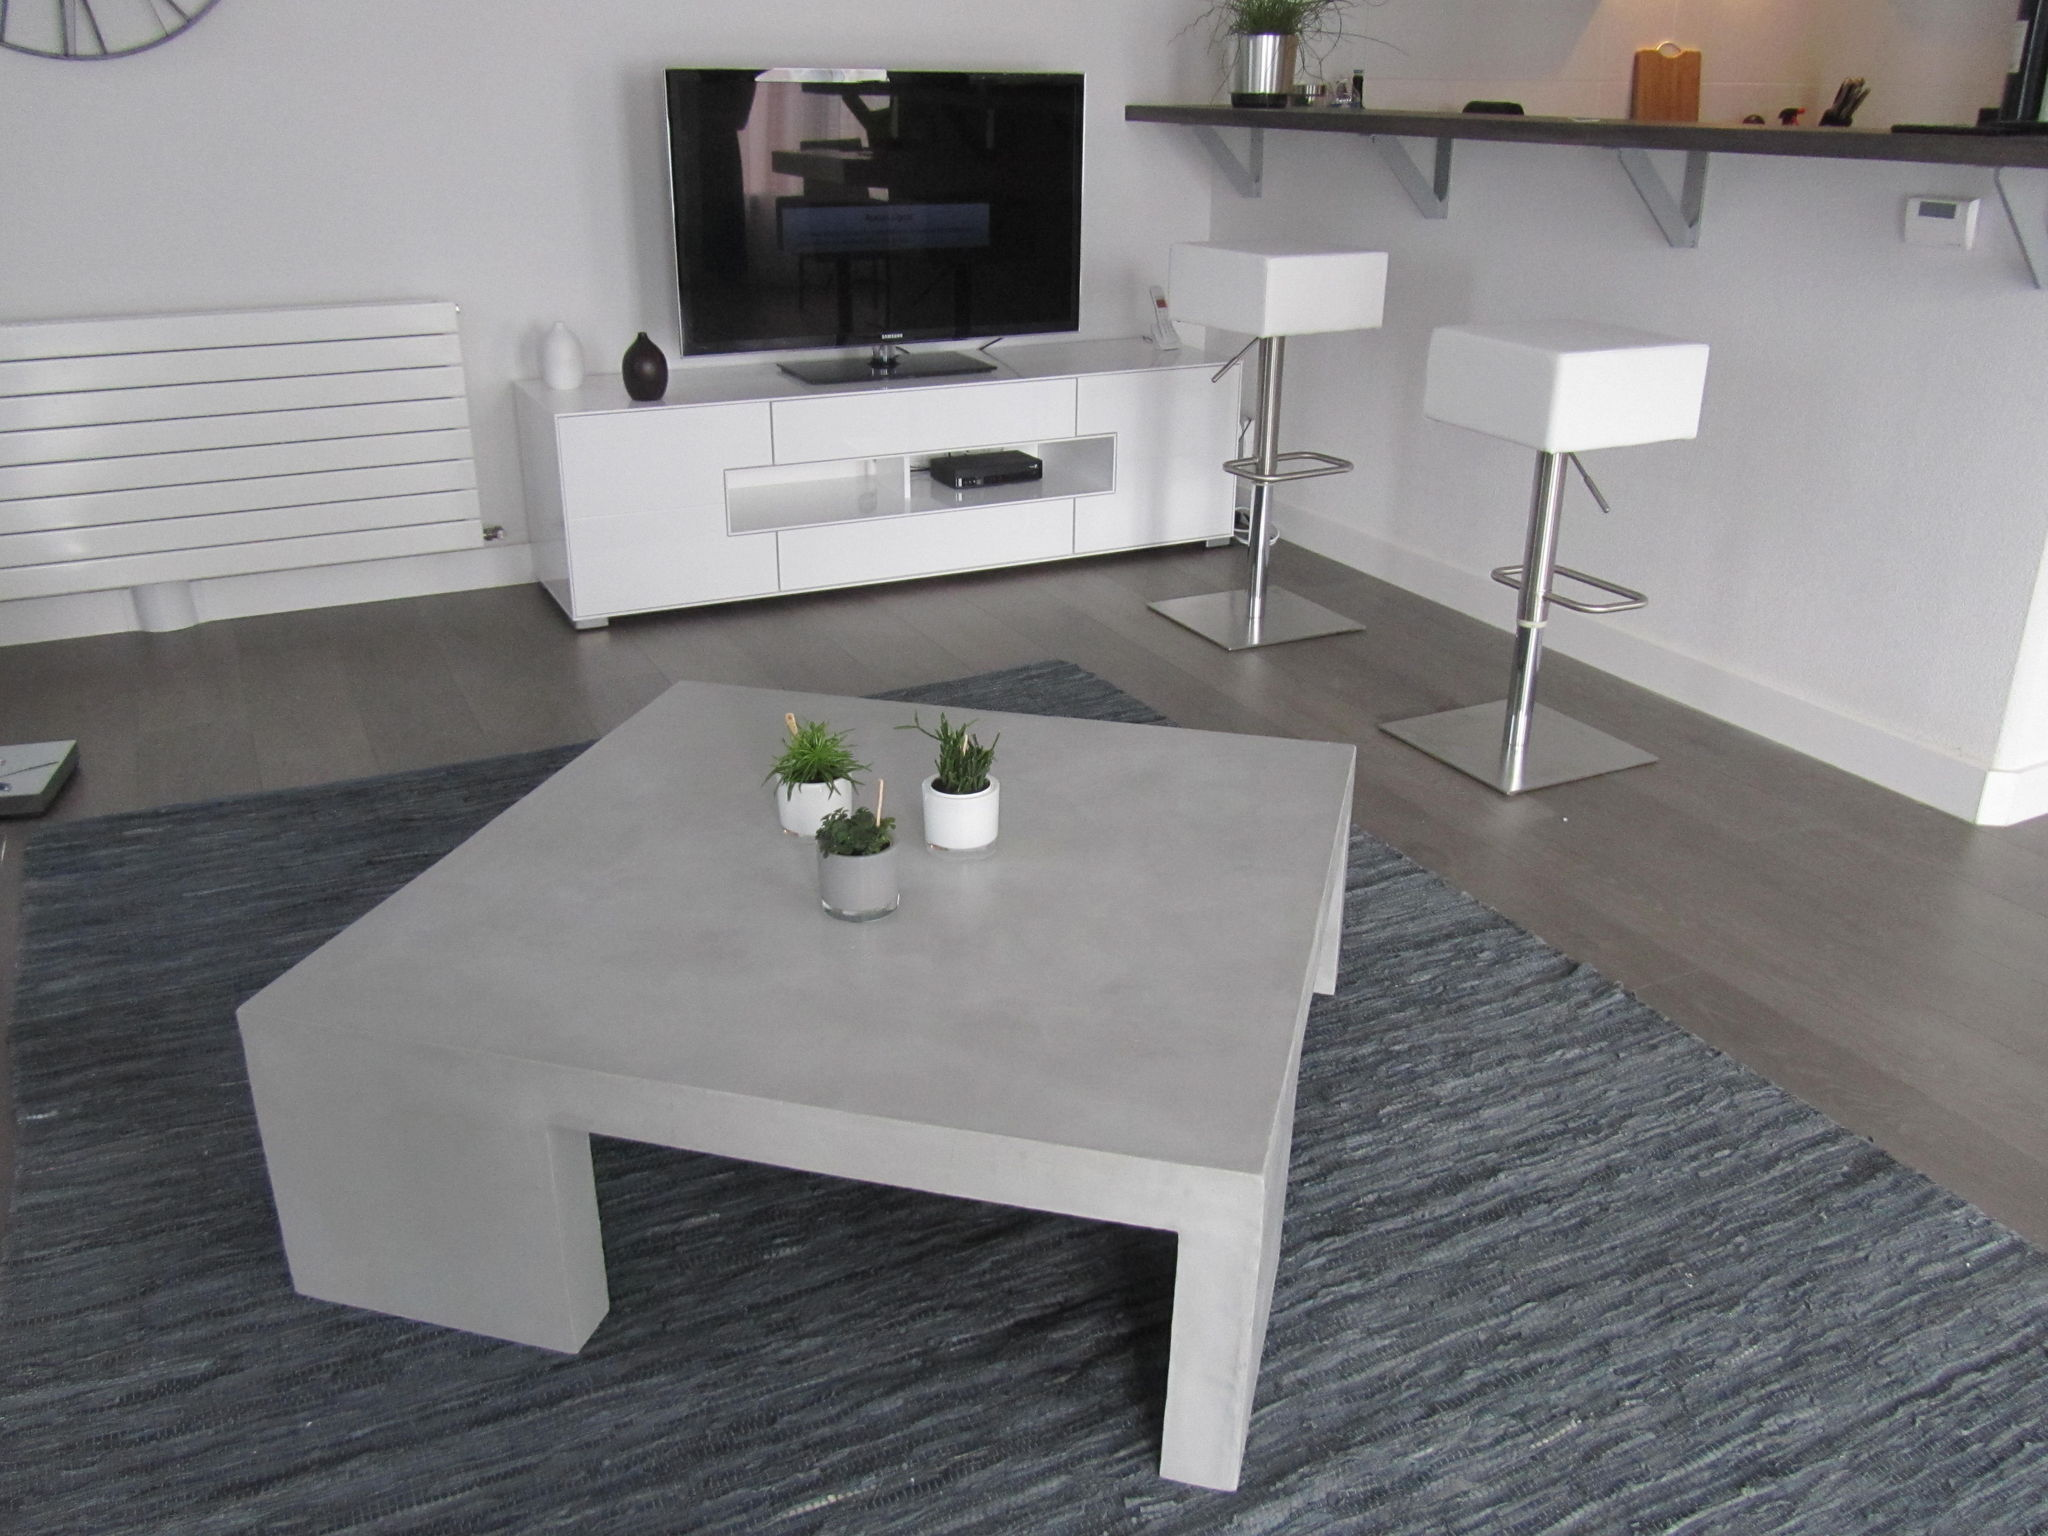 table de salon grise en beton cire photo de beton cire. Black Bedroom Furniture Sets. Home Design Ideas